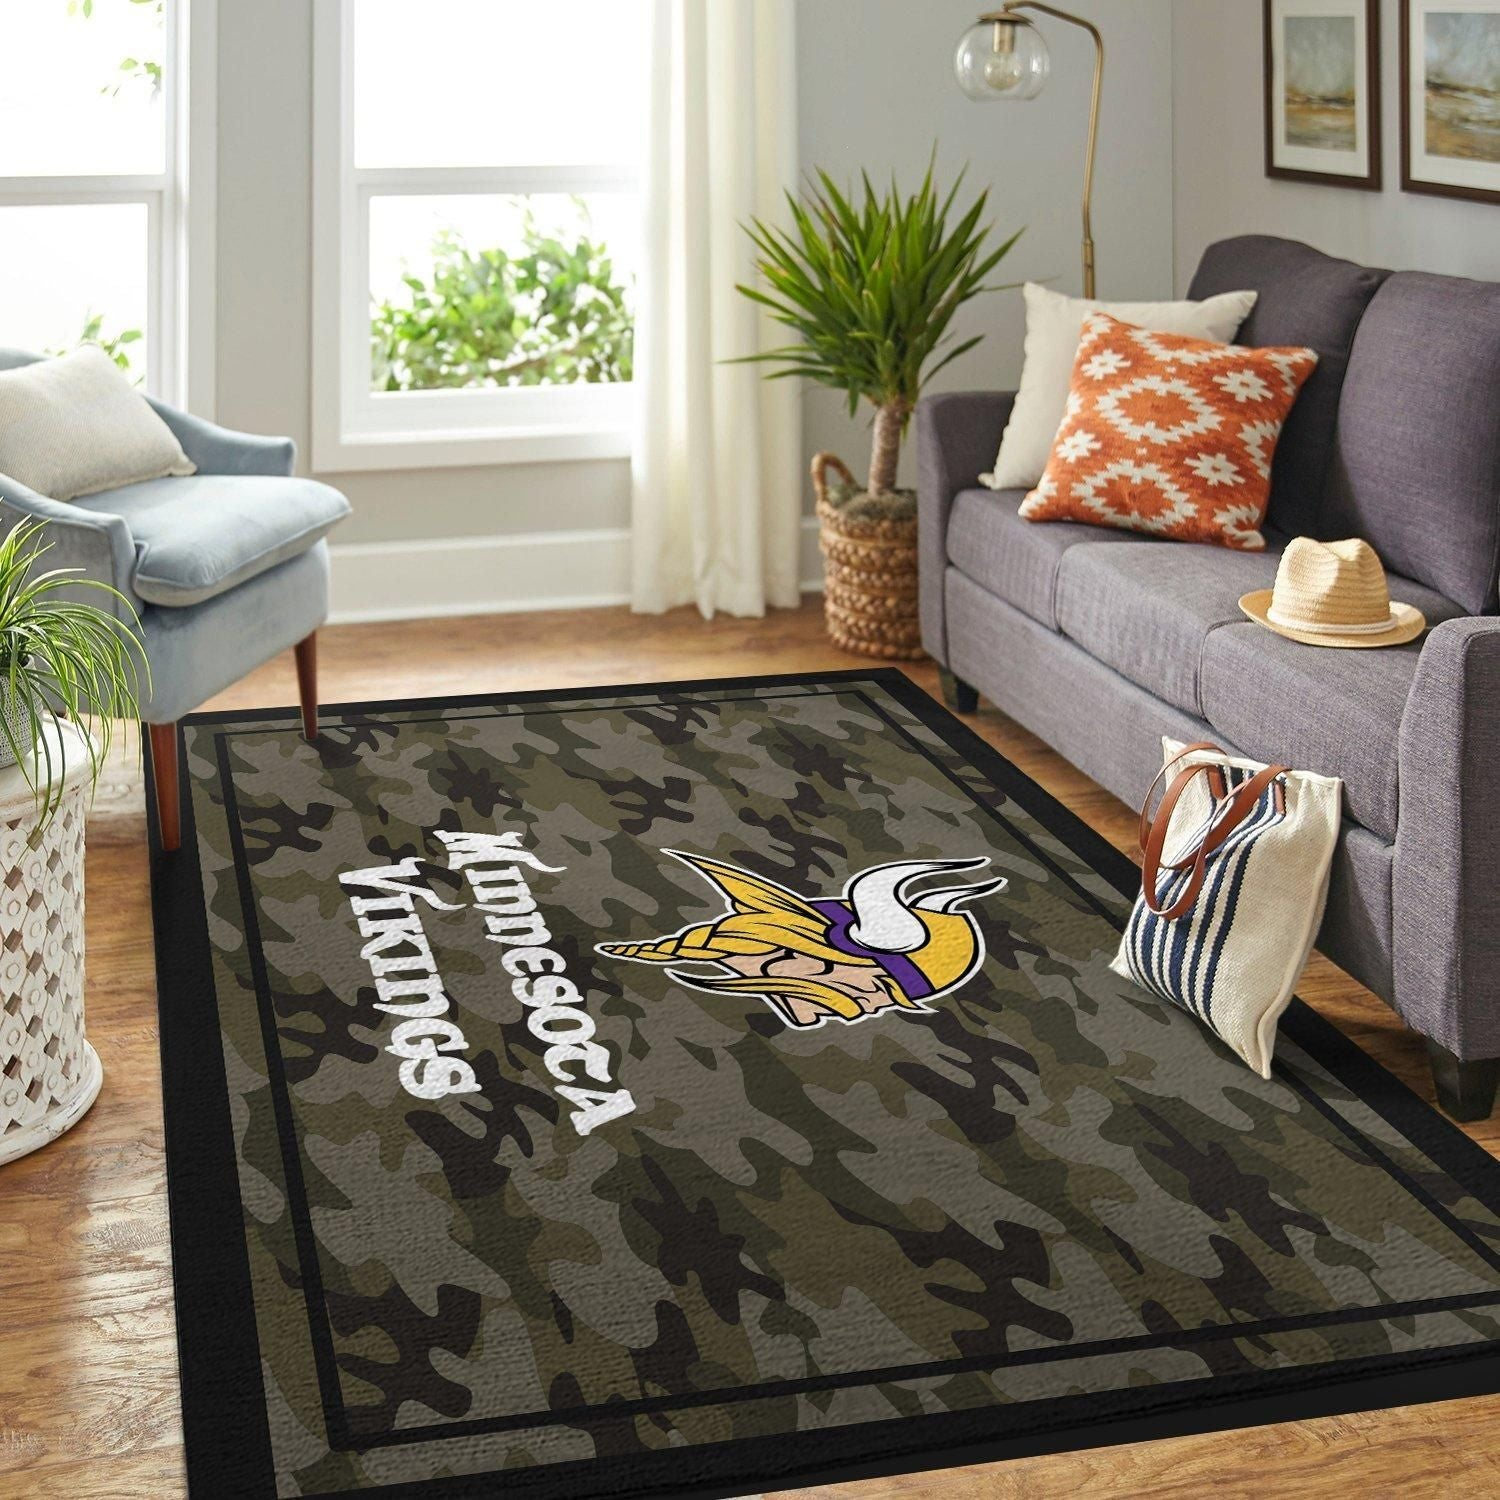 Camo Camouflage Minnesota Vikings Area Rugs NFL Football Team Living Room Carpet Carpet Sport Custom Area Floor Home Decor